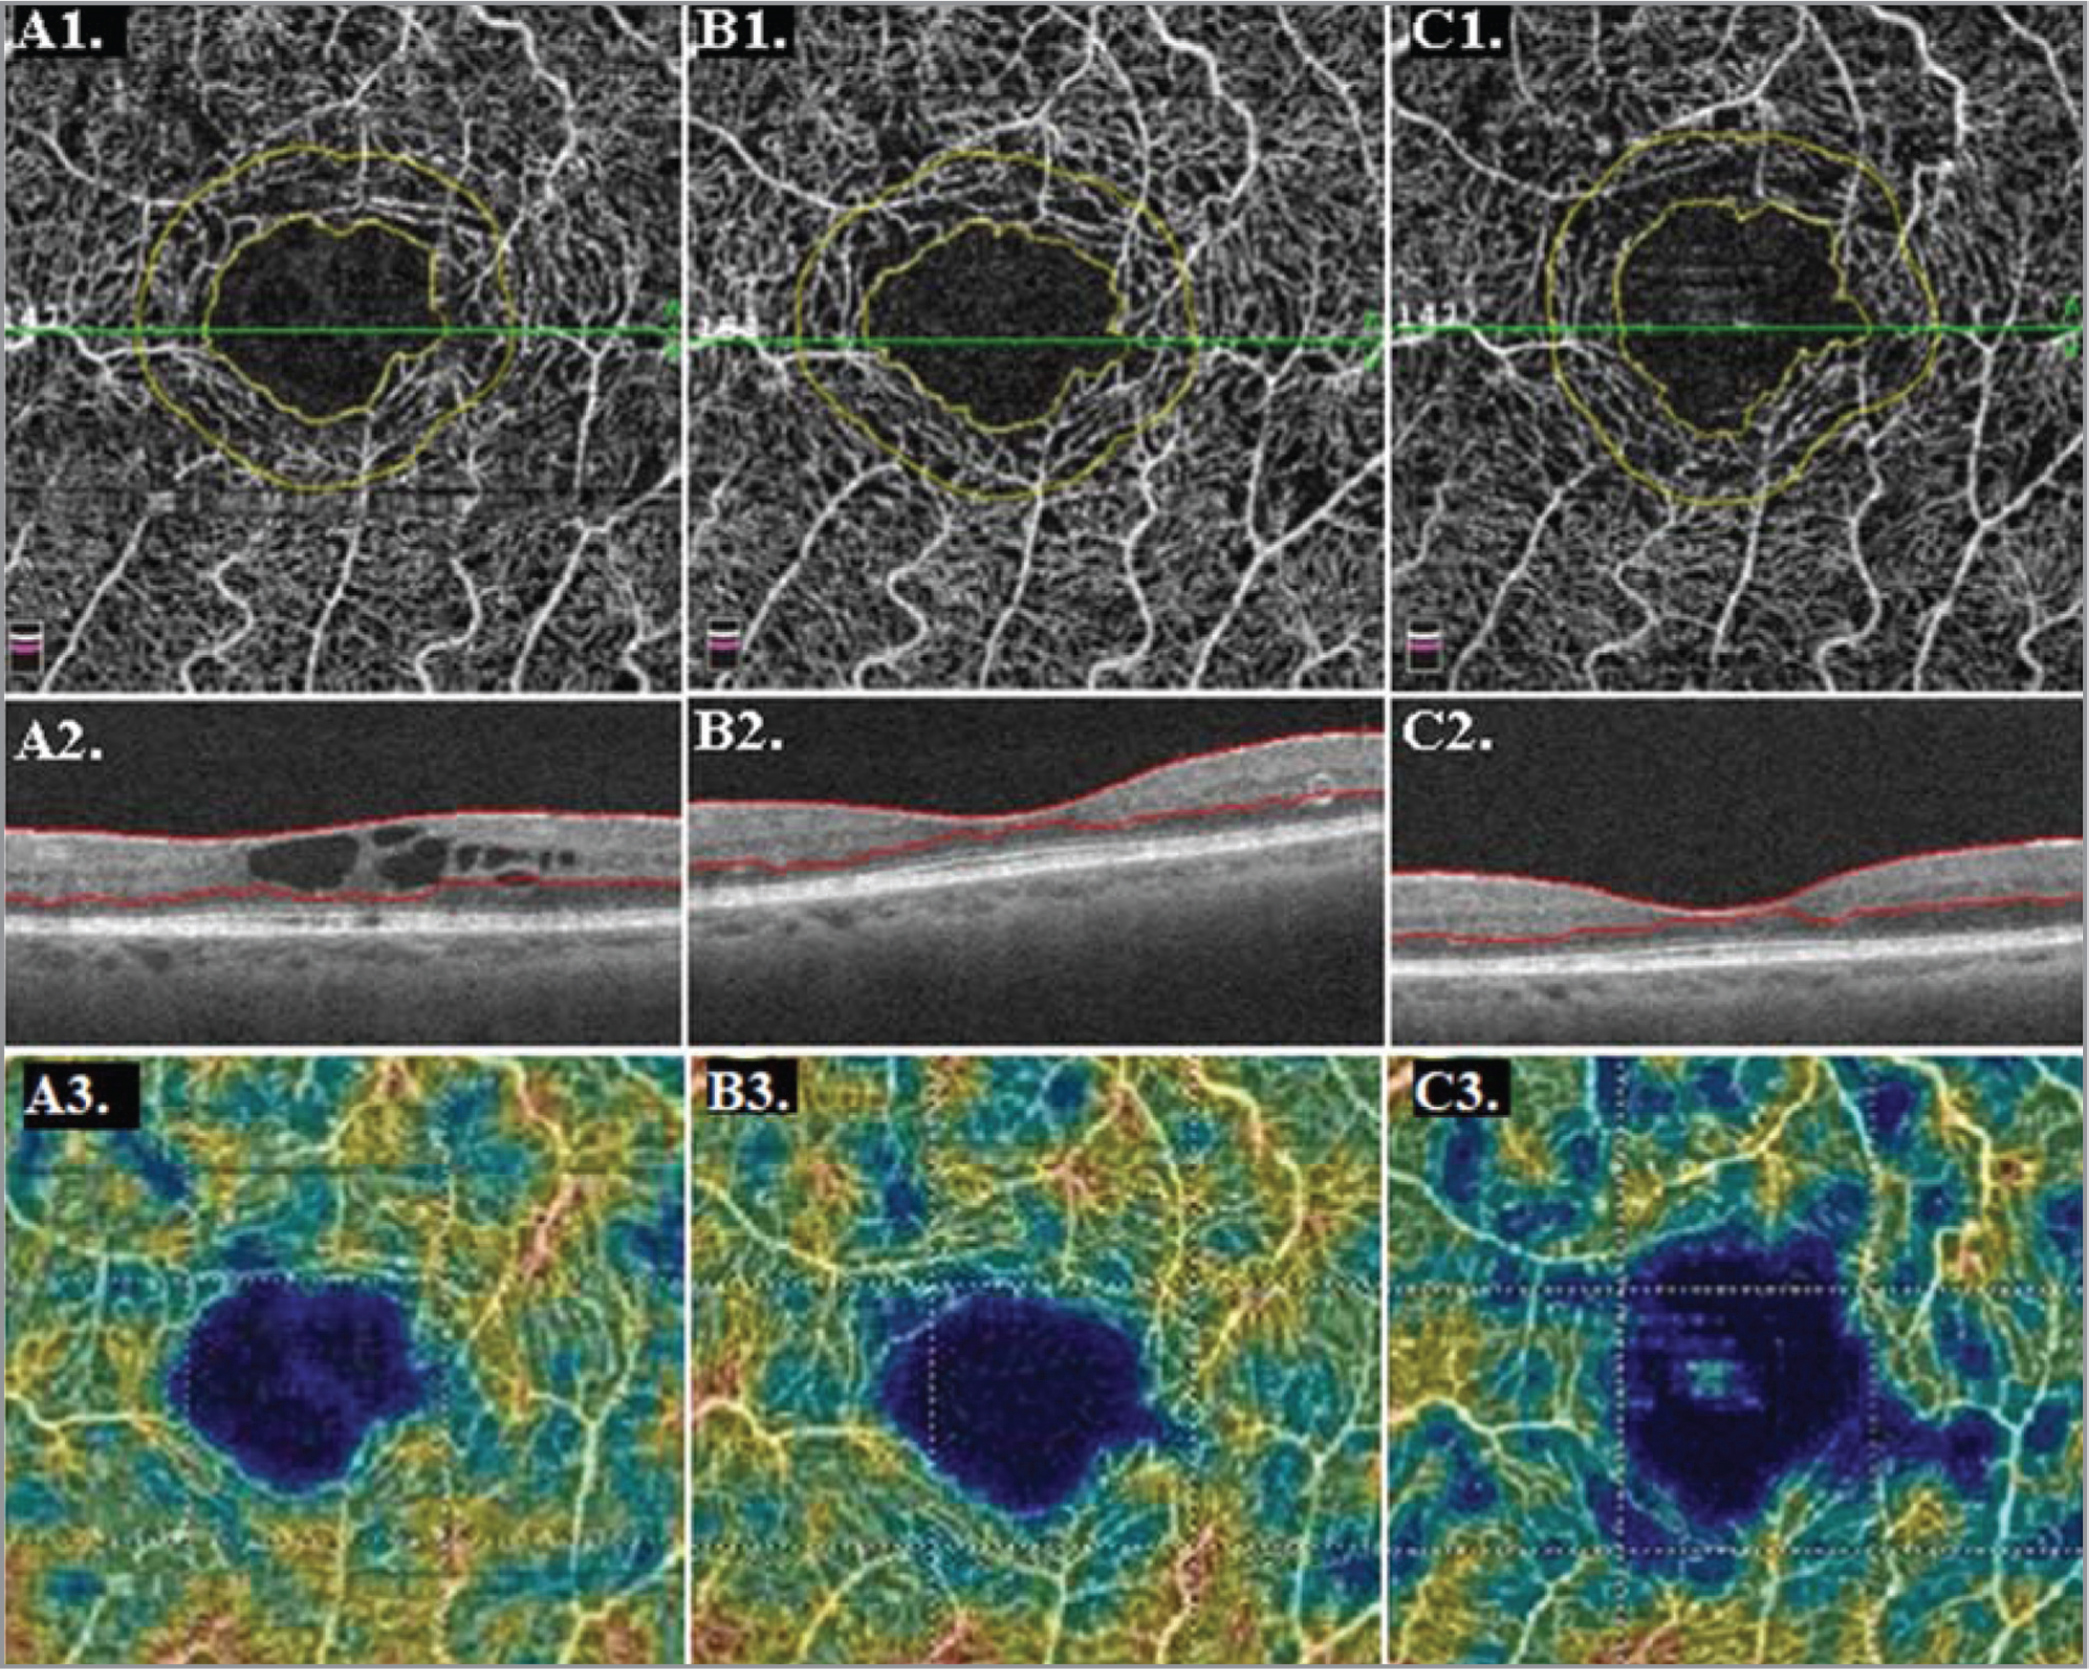 Optical coherence tomography angiography (OCTA), optical coherence tomography (OCT), and capillary perfusion density (CPD) analysis in a single study eye with center-involved diabetic macular edema (DME). (A1) Baseline foveal avascular zone (FAZ) area analysis; FAZ area = 0.592 mm2. (A2) Baseline OCT. (A3) Baseline CPD analysis. (B1) FAZ area analysis at Month 6; FAZ area = 0.635 mm2. (B2) Month 6 OCT. (B3) Month 6 CPD analysis. (C1) FAZ area analysis at Month 24, which depicts enlargement of FAZ from baseline; FAZ area = 0.685 mm2. (C2) Month 24 OCT with resolution of DME. (C3) Month 24 CPD analysis showing loss of perfusion density from baseline.